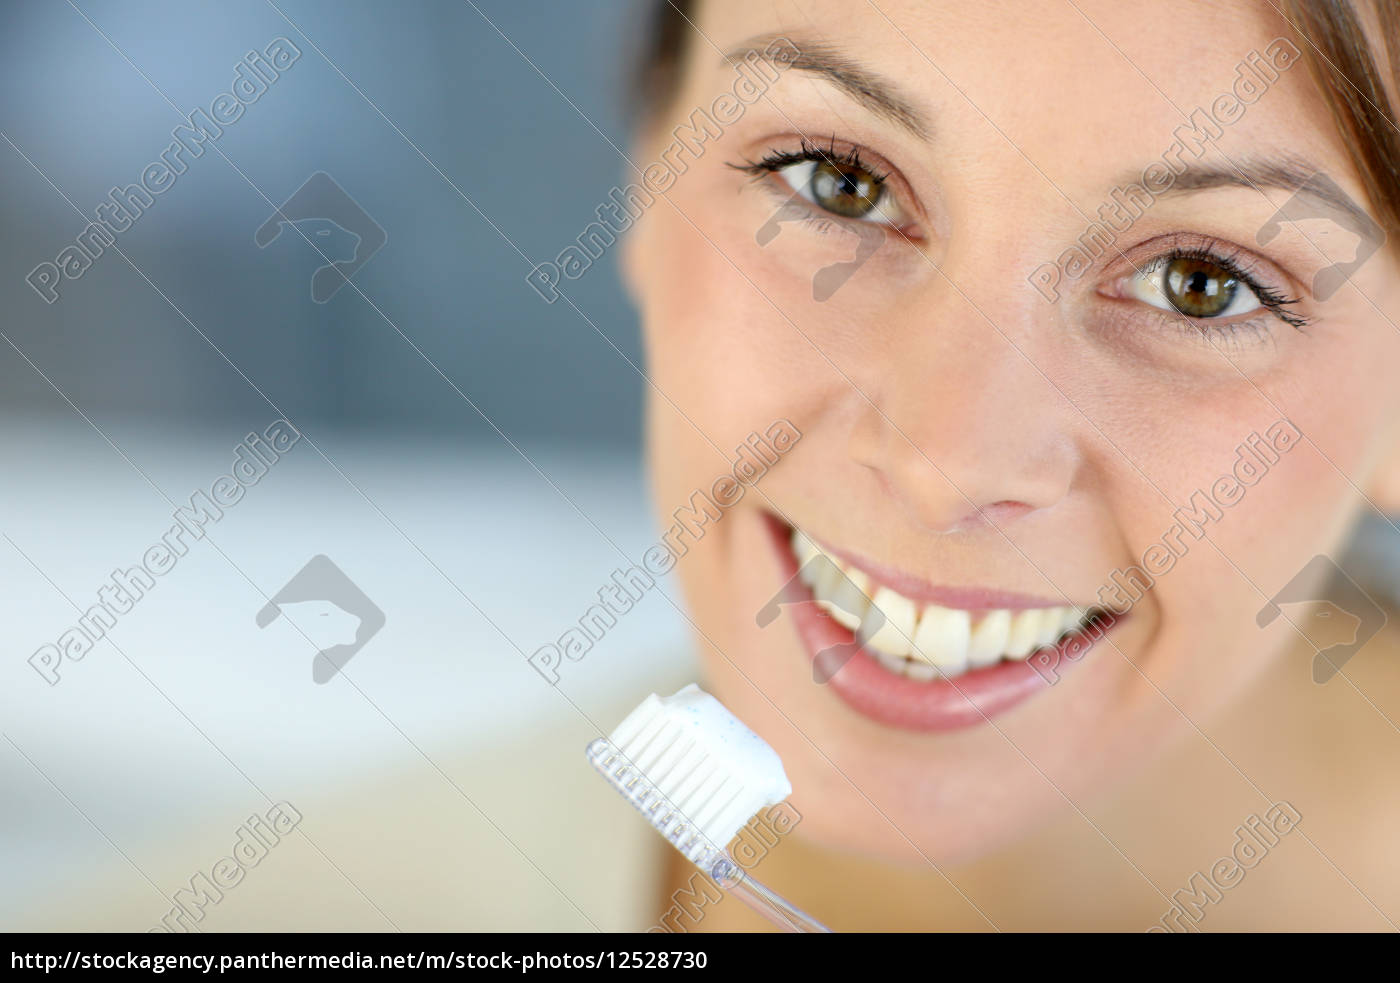 closeup, on, woman's, toothy, smile, brushing - 12528730